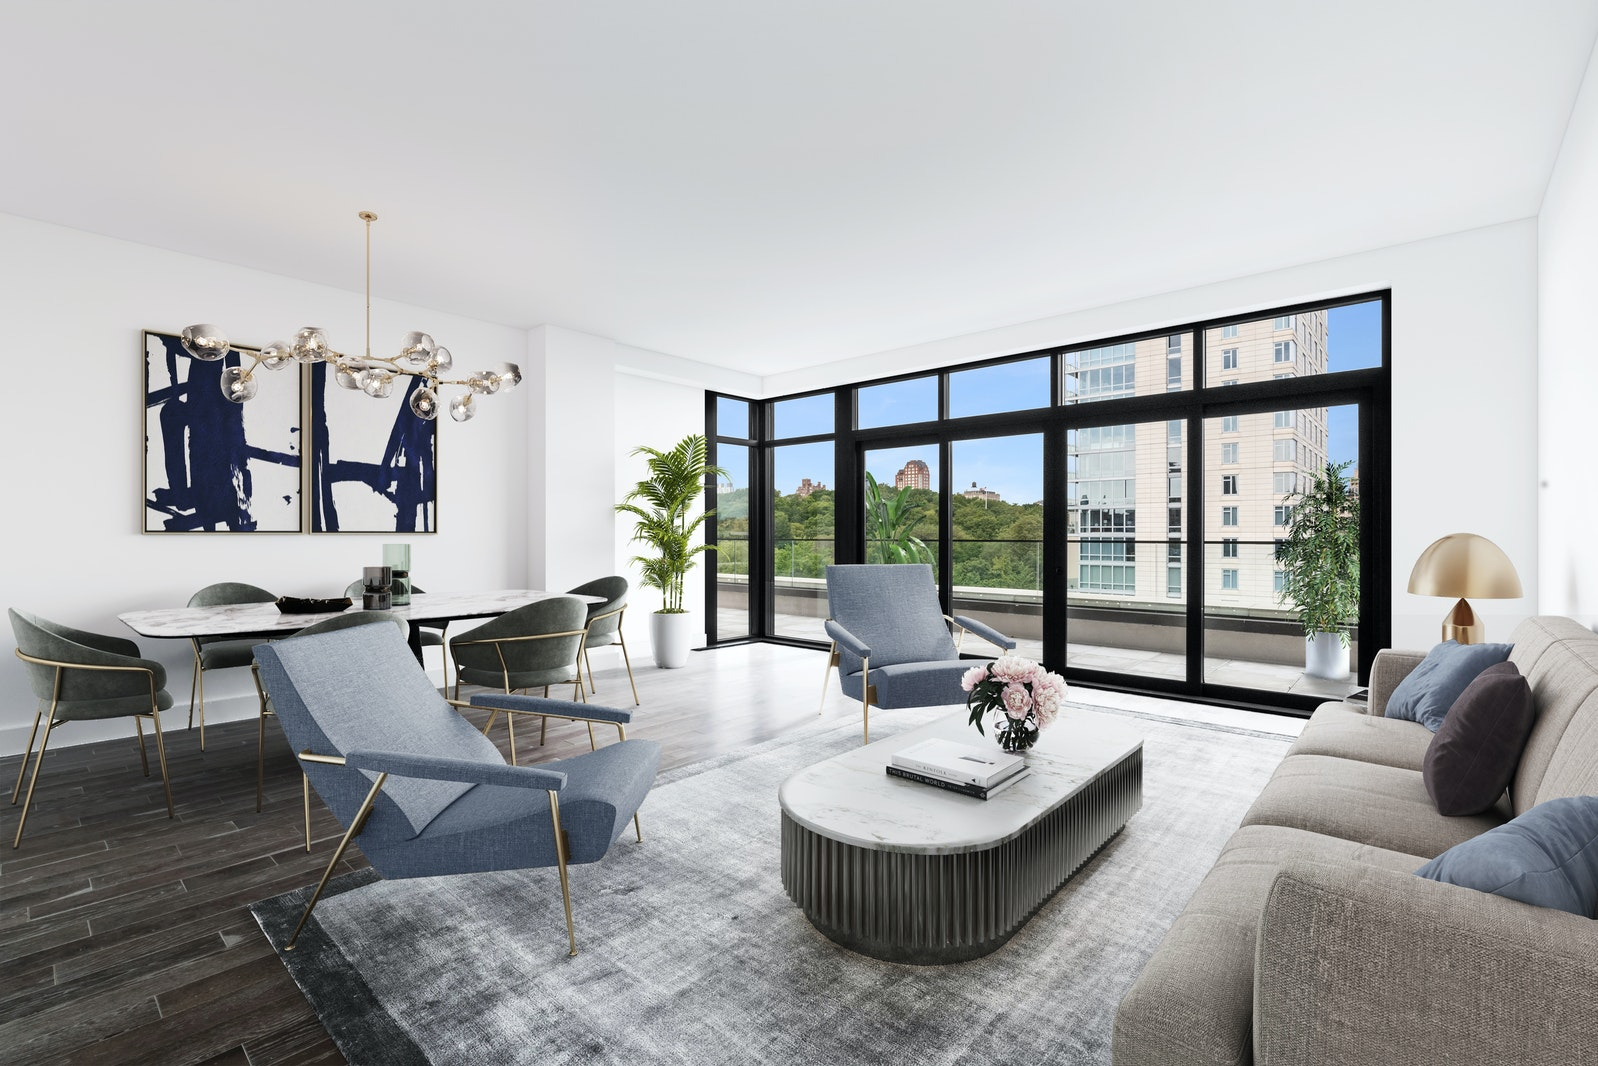 Please contact the sales team to schedule an in-person appointment or guided virtual tour. Summer Terrace Collection Incentive - sponsor is offering a $150,000 credit on this unit for a contract signed by July 31,2020. All showings are By Appointment Only, including Open Houses. Penthouse B at 10 Lenox is the perfect home for how we live today, encompassing 1,748 interior square feet, plus a glorious 760-square-foot wrap-around terrace. The spacious living room and secluded master bedroom offer commanding views of Central Park and have direct access to the terrace. The home boasts two additional bedrooms, two full baths, plus a chic powder room, and a gracious entry foyer with a large custom niche, perfect for dropping off shoes, and masks. Situated on semi-private floor with only one other residence, this home is the ultimate in privacy.Residences at 10 Lenox exude sophistication and ease with gracious floor plans, ceiling heights up to 9'-6, and beautiful elements such as white oak flooring in plank and herringbone patterns, and casement-style windows with expansive neighborhood views. All residences feature luxe details such as multi-zoned heating and cooling, pre-wiring for TVs and cable, a Bosch washer/dryer, and custom closet systems in all master suites.The kitchen is as functional as it is beautiful with countertops crafted from stunning slabs of honed Danby Fantastico marble, complemented by custom white lacquer cabinetry, a cool gray tile backsplash, and custom-paneled Bosch appliances including a speed oven and a 42-bottle under-counter wine refrigerator. A walk-in pantry and a custom-millwork bar area add to the copious amounts of storage.The elegant master bath is swathed in brilliant Bianco Sivec marble walls and radiant heated floors, with an accent wall of Lais Gray marble mosaic. A custom walnut vanity is graced by polished chrome fixtures by Waterworks.The second bath is chic and refined with classic white subway tile walls and heated porcelain tile floors. A custom walnut vanity with bronze metal detailing and a deep soaking tub by Duravit are accented by a suite of Waterworks fittings and fixtures.The powder room is a true work of art, with herringbone-patterned oak floors, a beautiful accent wall of silver brown travertine stone, complemented by Designtex wallcovering and a Waterworks washbasin.10 Lenox is a collection of 29 exquisite residences finely crafted by premier design firm Fogarty Finger. Both modern and classic in its details, this stately, eight story, brick and cast stone building looks out onto the lush greenery of Central Park and reflects the storied legacy of its Harlem surroundings. Amenities include an expansive Rooftop Lounge with BBQ grill and outdoor kitchen, dining and lounge seating areas, a state-of-the-art fitness room, a sunlit children's playroom, private rooftop cabanas available for purchase, and stunning park views from its shared rooftop amenity space. Additional services include a part-time doorman and cyber doorman service, a building superintendent, bike storage, and storage units for additional cost.Immediate Occupancy. The complete offering terms are in an offering plan available from the Sponsor. File No. CD18-0161. Sponsor: 10 Lenox Development Ventures, LLC, c/o Level One Holdings, 221 West 37th Street, 5th Floor, New York 10018. Equal Housing Opportunity.